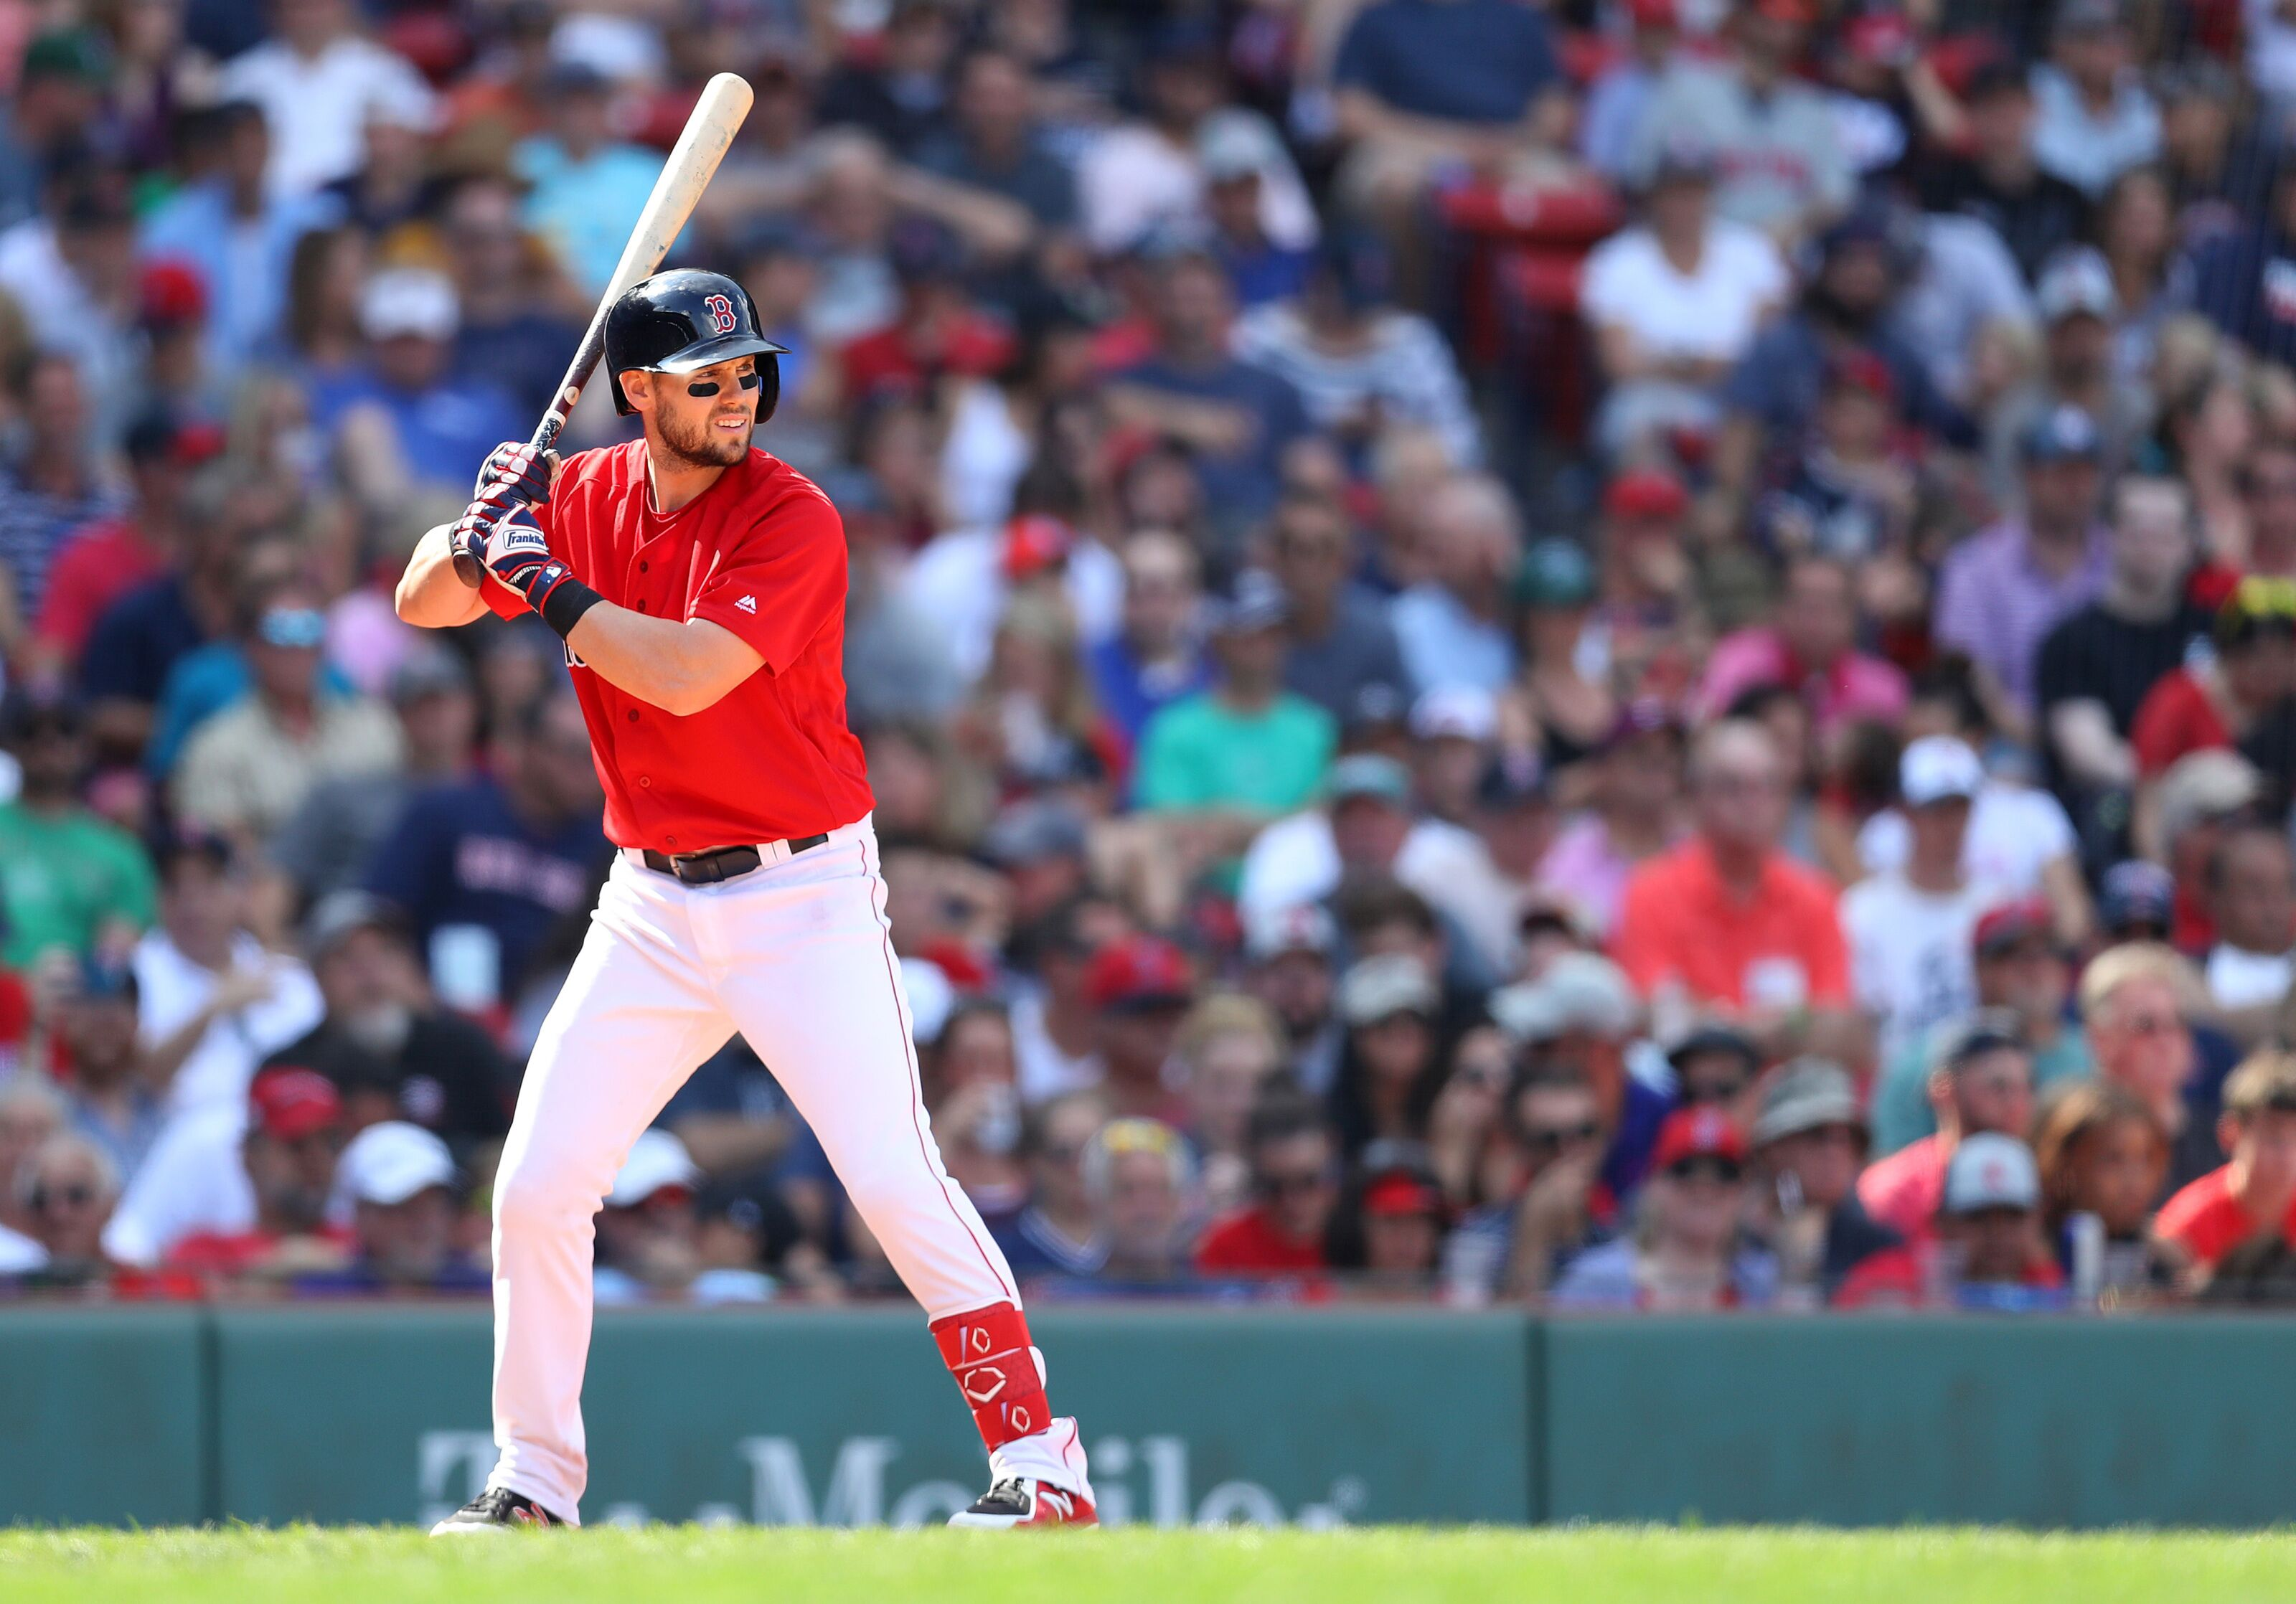 Boston Red Sox place baffling amount of faith in Chris Owings